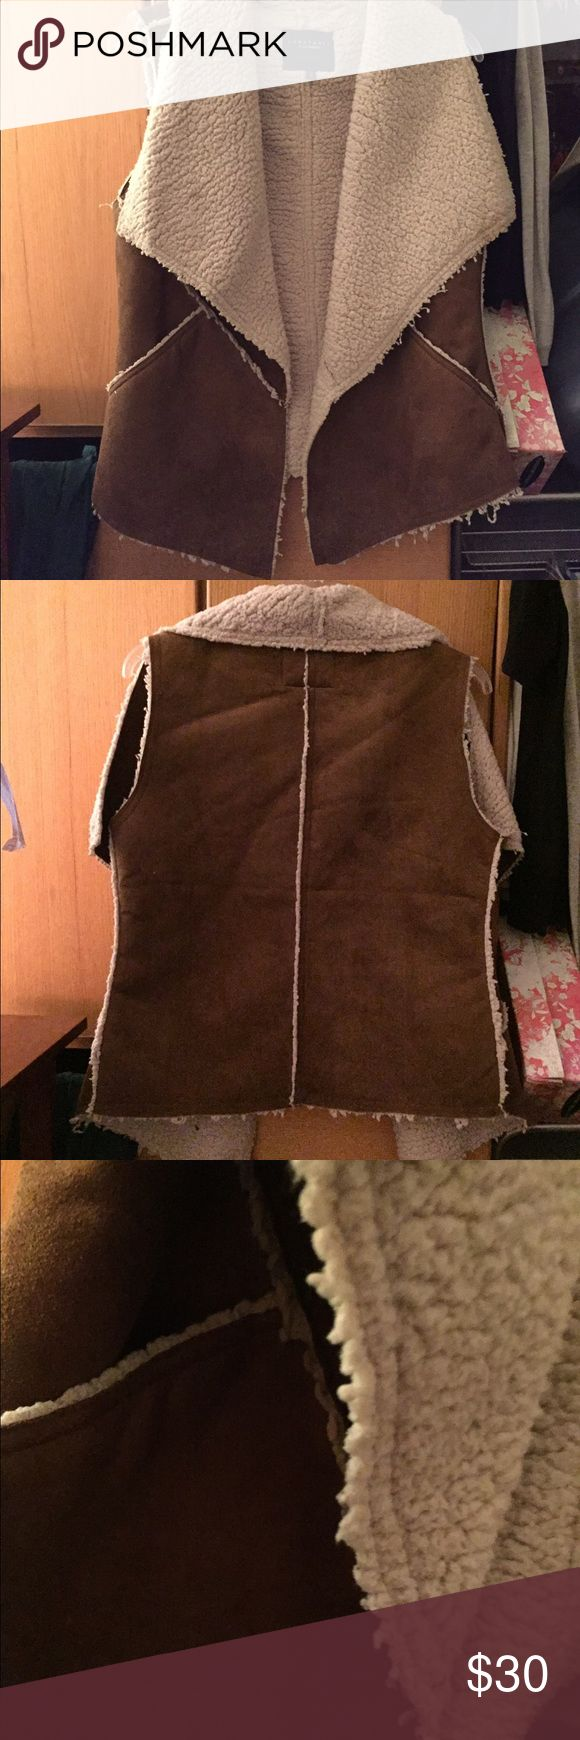 Brown suede shearling vest Tan/brown suede and shearling vest! In excellent condition. Sanctuary Jackets & Coats Vests